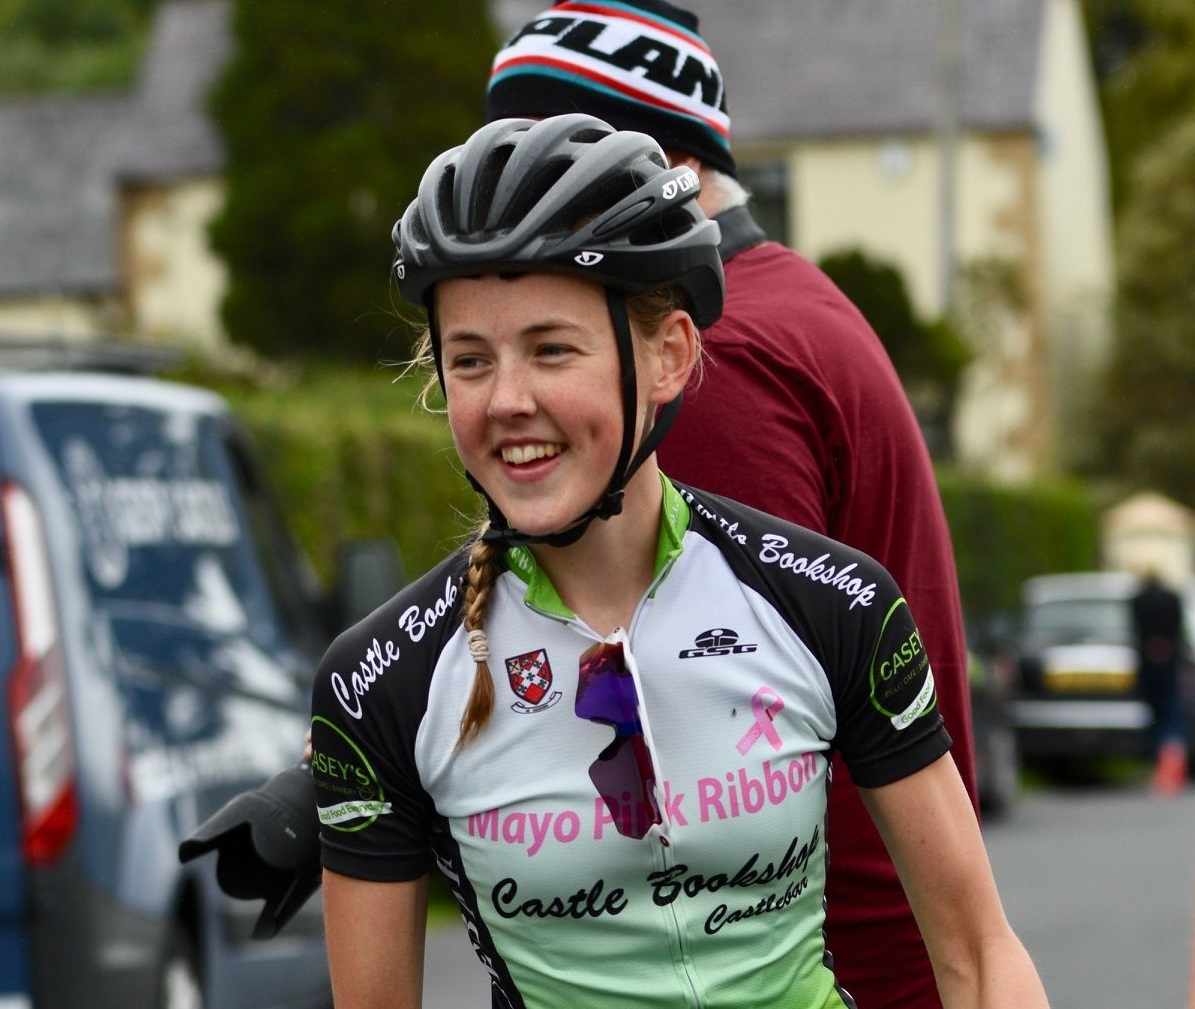 Anastasia Devine Wiki midwest radio - mayo cyclist maeve gallagher in action at